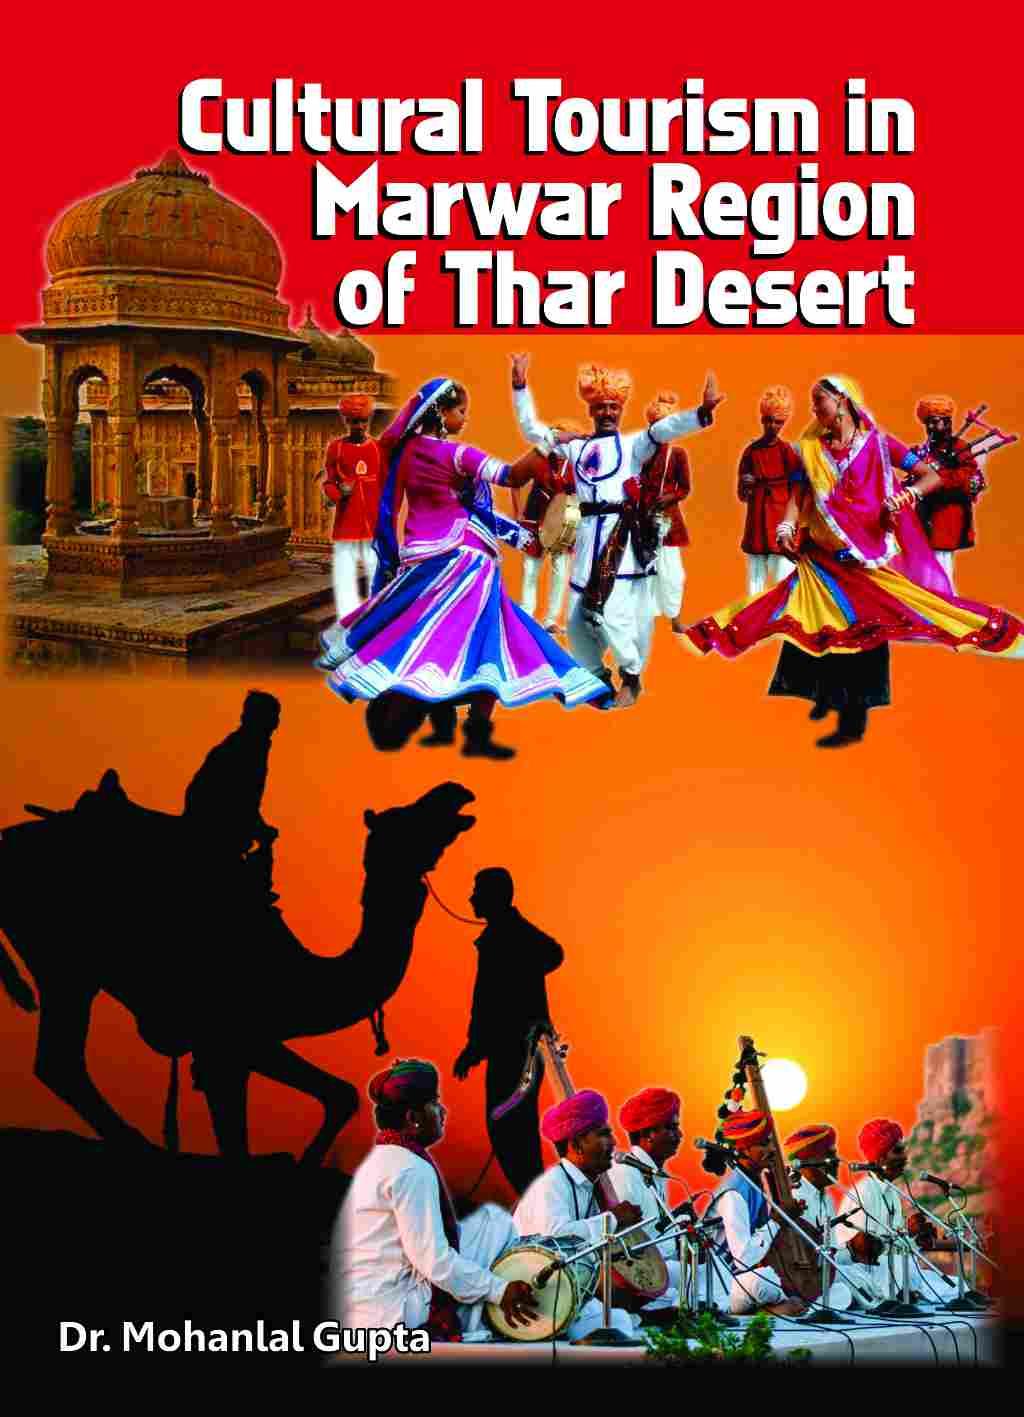 CULTURAL TOURISM IN MARWAR REGION OF THAR DESERT